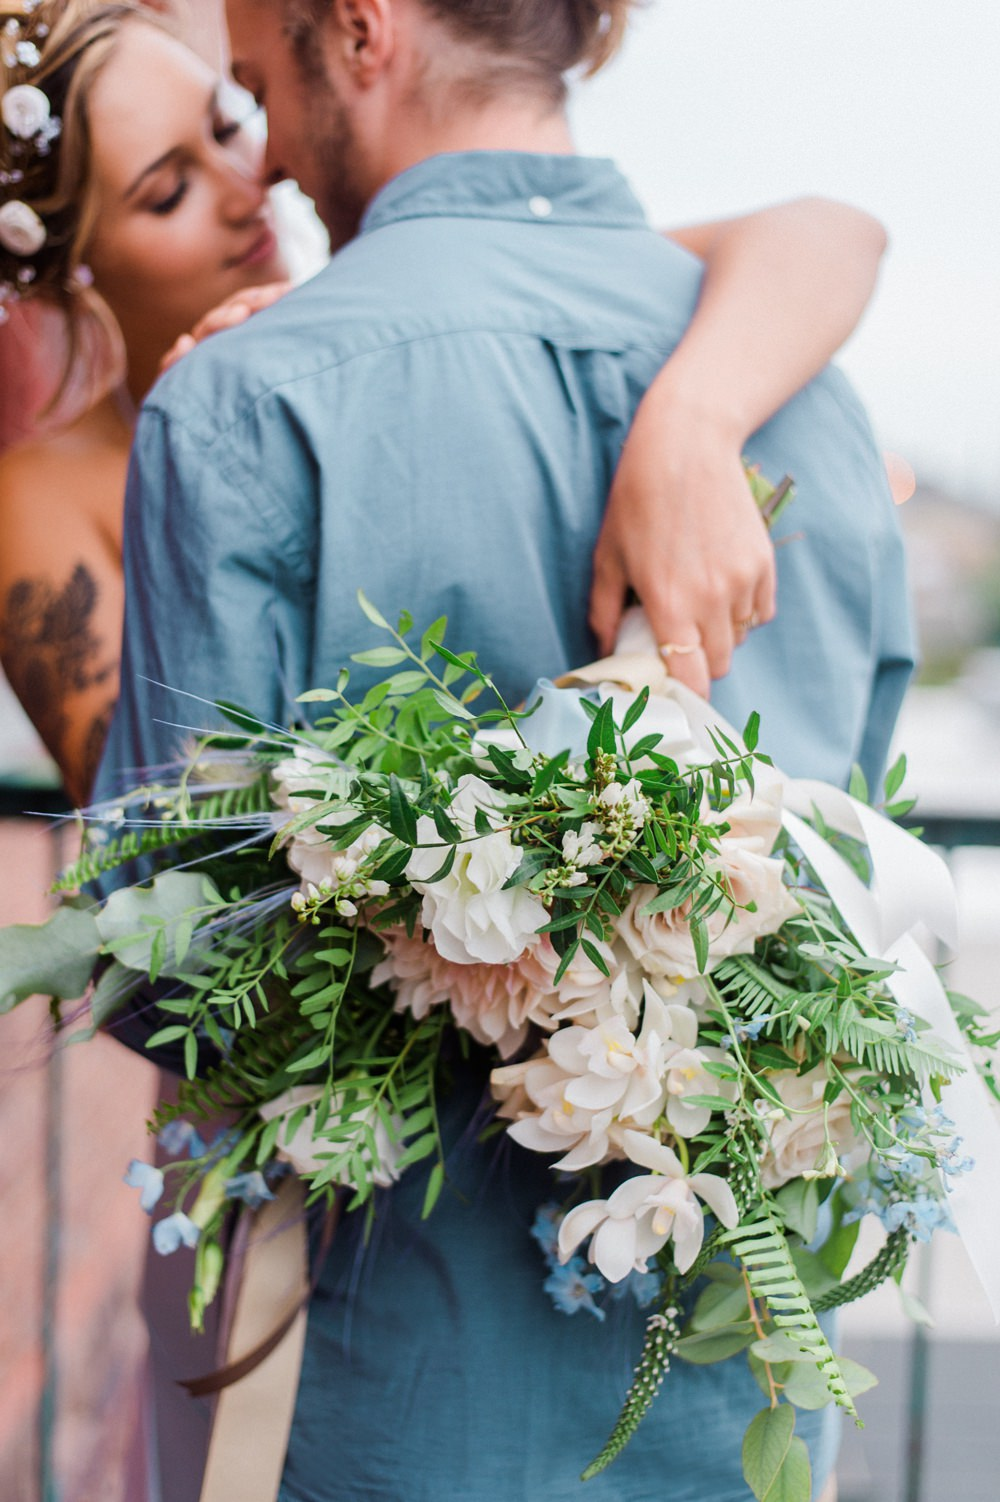 Bouquet Bride Bridal Peach Blush Dahlia Greenery Ocean Wedding Ideas Industrial Rachel Watkinson Photography